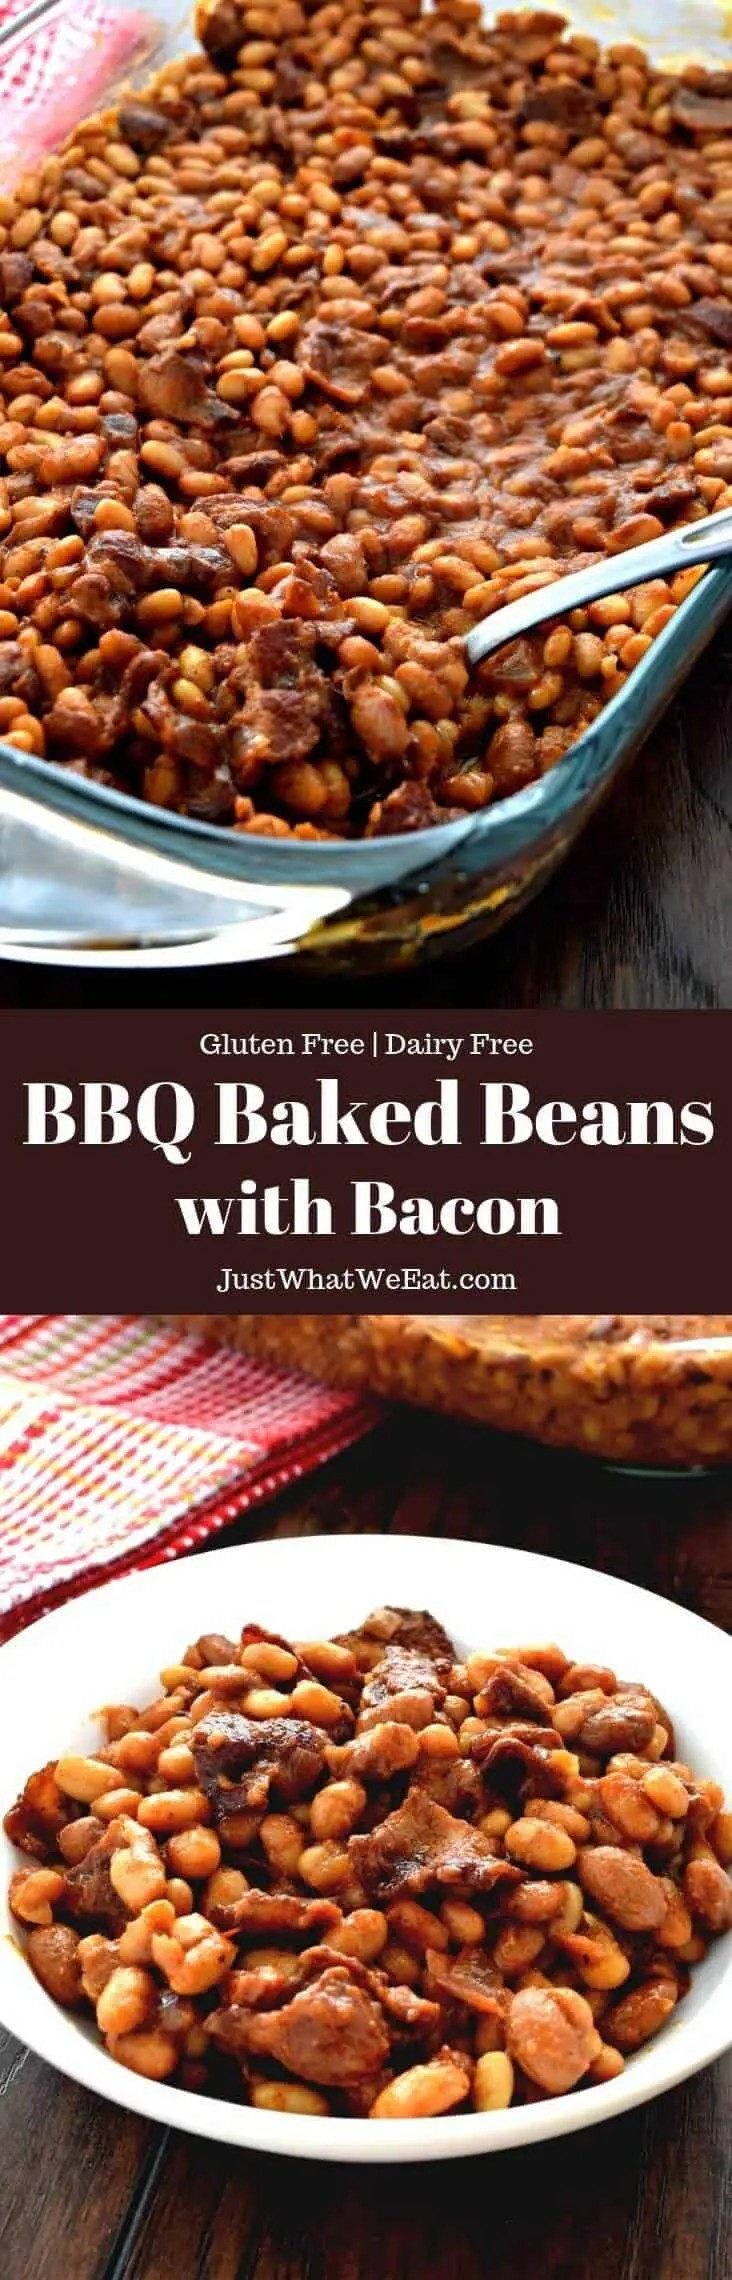 BBQ Baked Beans - Gluten Free, Dairy Free - Just What We Eat